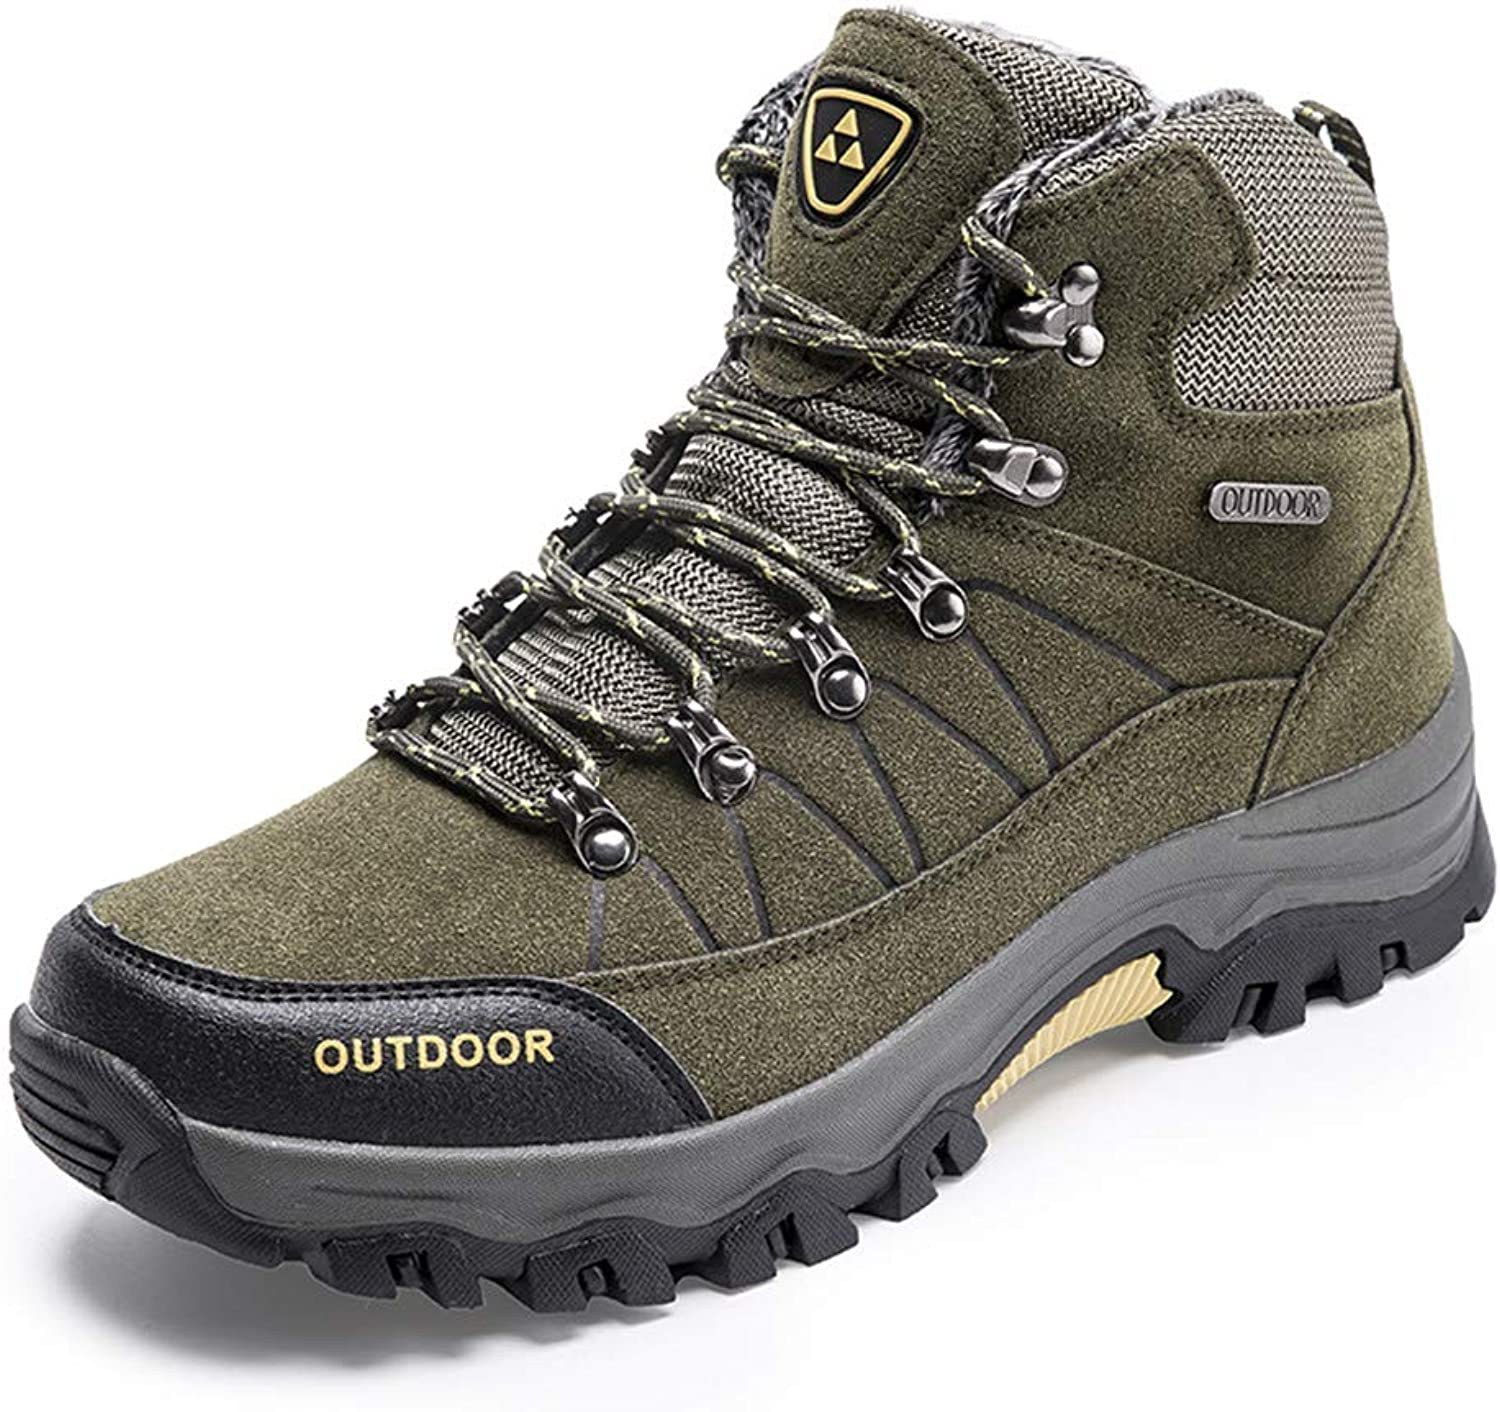 PEALAND Men's Mid Trekking Waterproof Hiking Boots Cold Weather with Fur Lined Outdoor Hiker